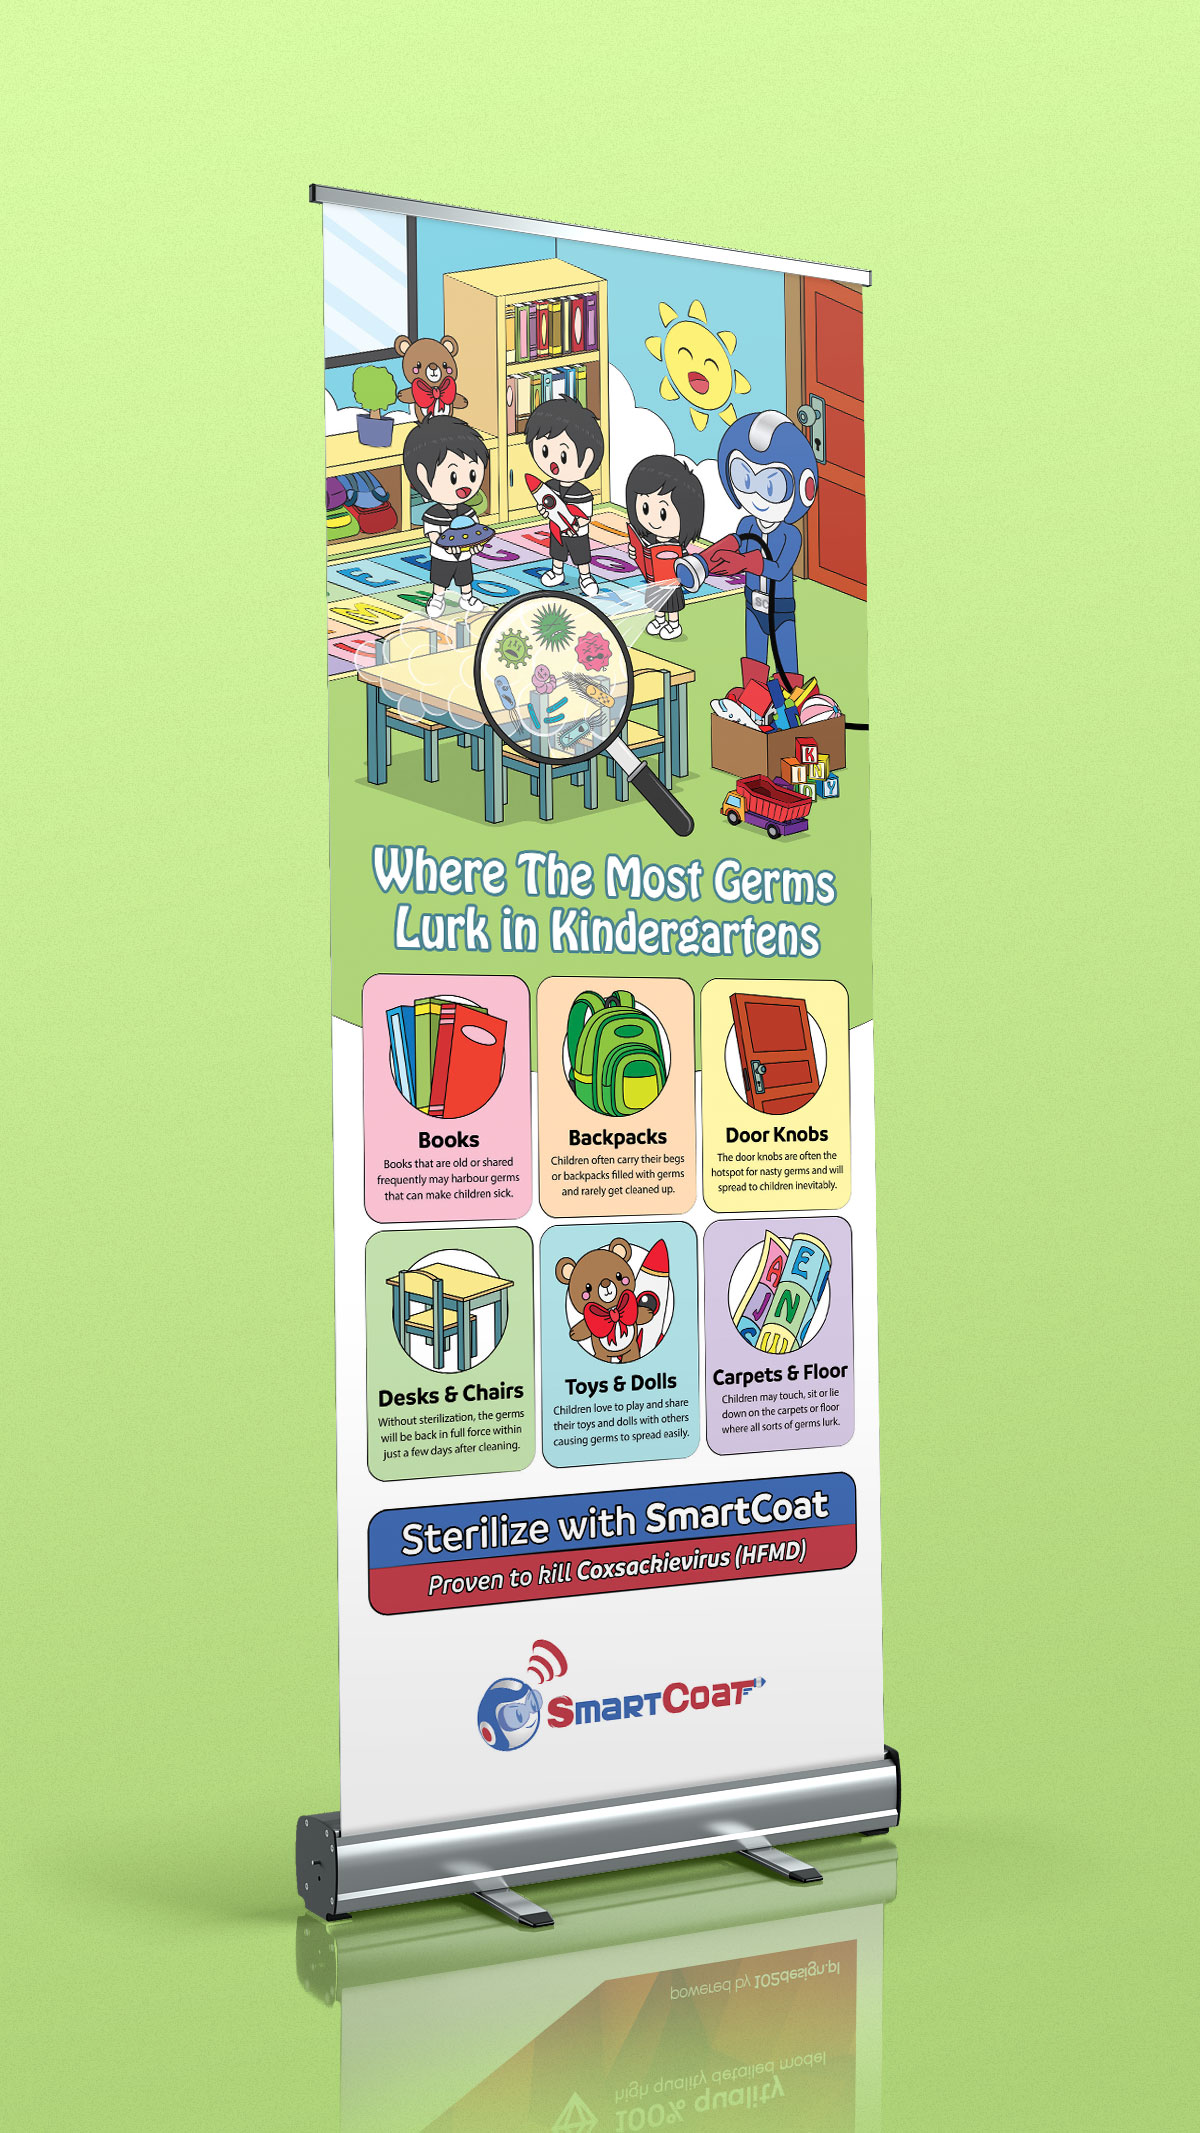 Where The Most Germs Lurk in Kindergartens Roll-Up Banner Design 04